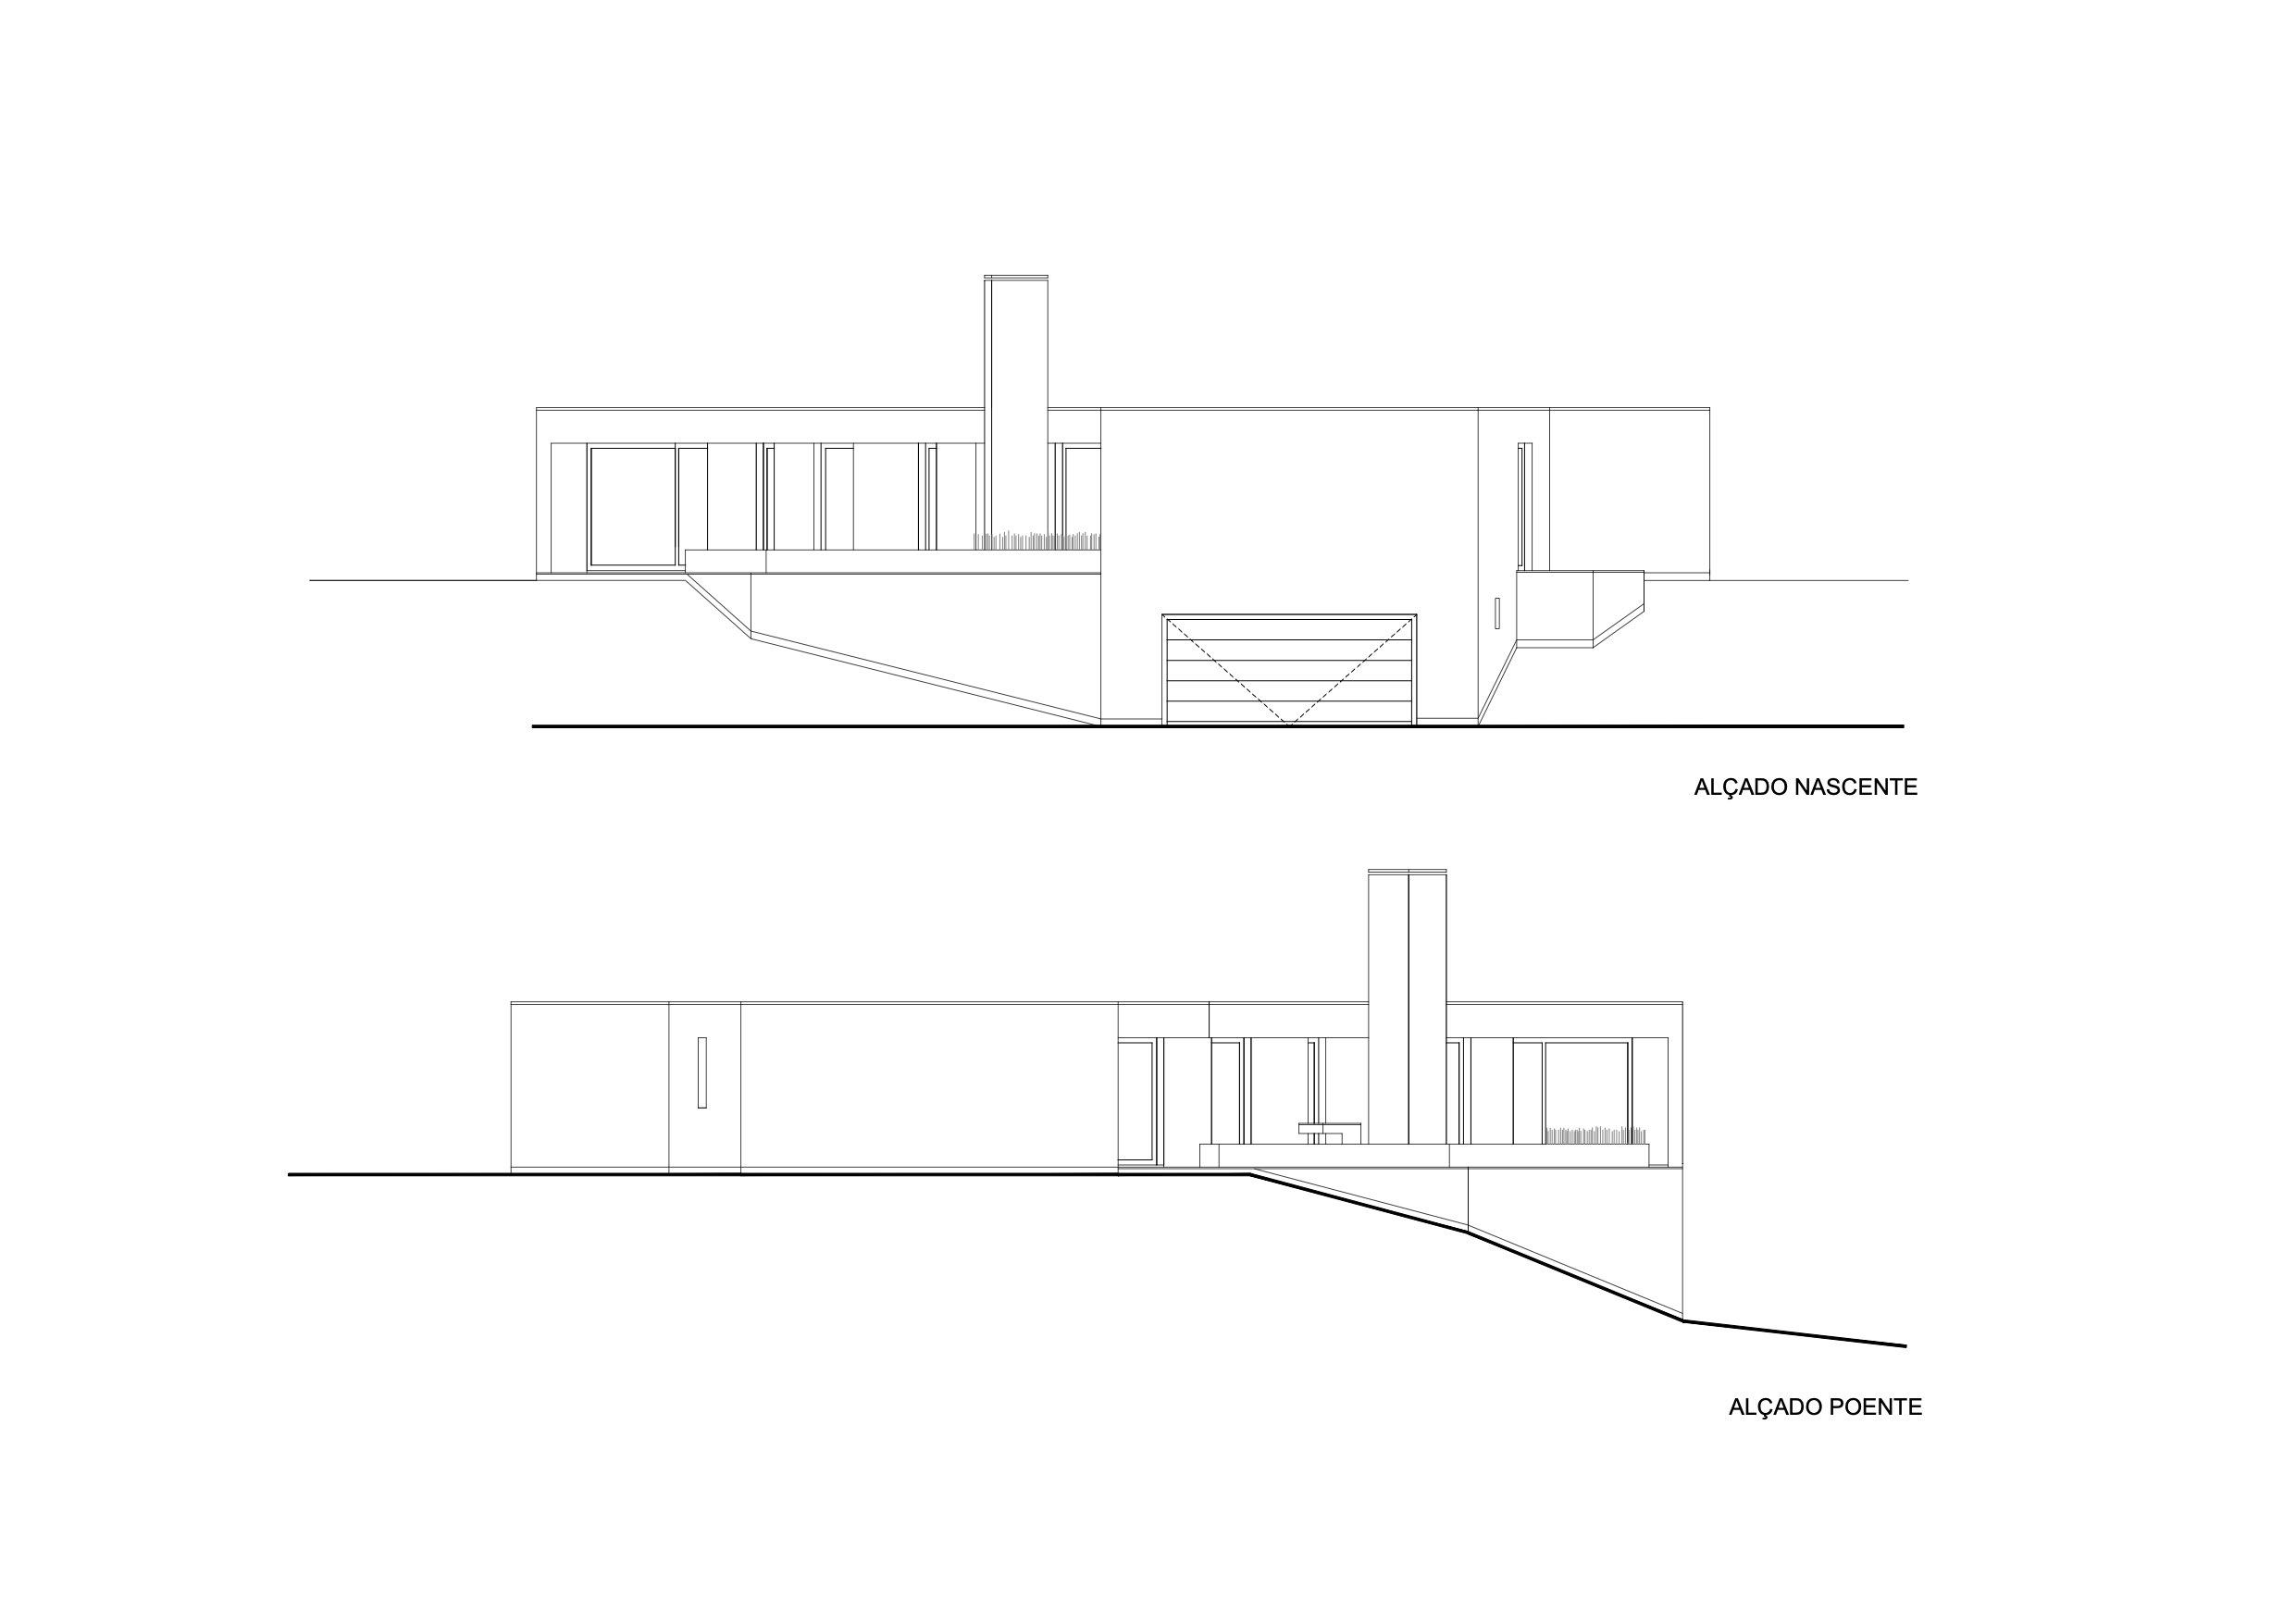 architectural elevation drawing